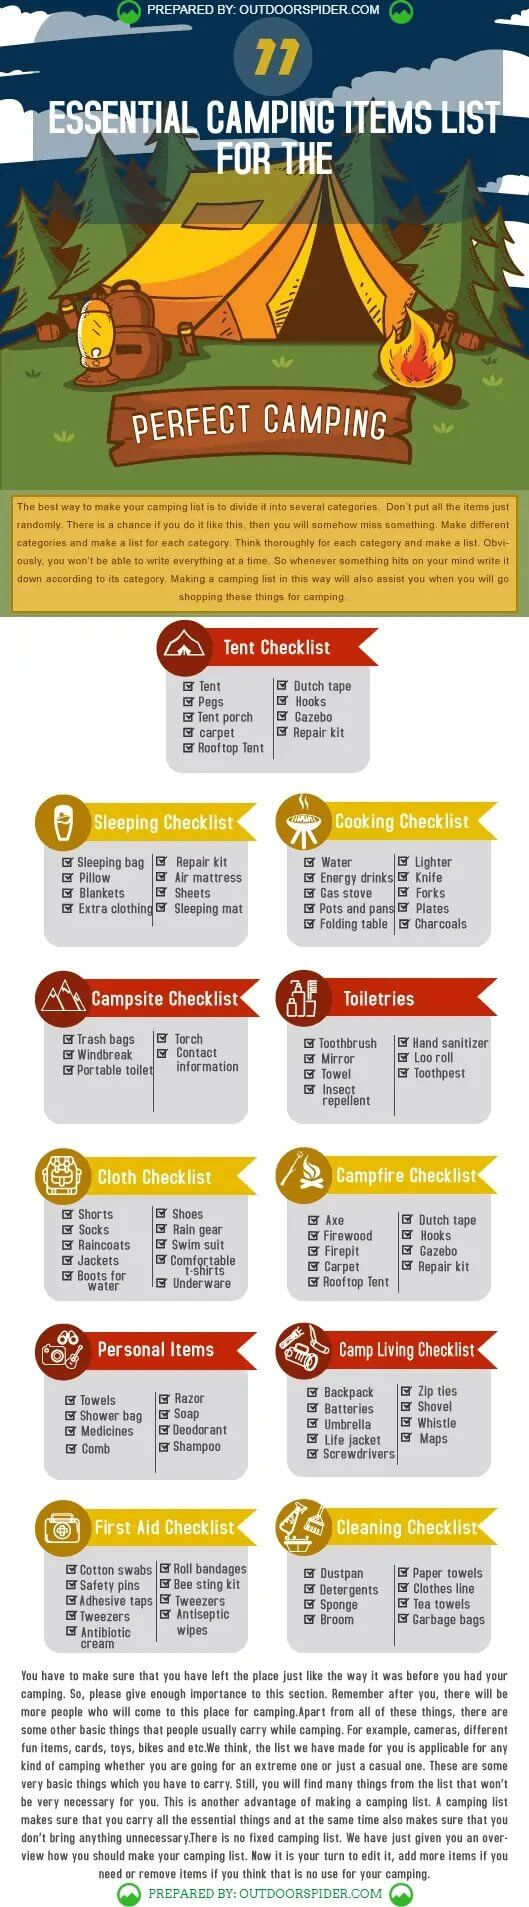 Infographic Essential Camping Items List for the Perfect Camping